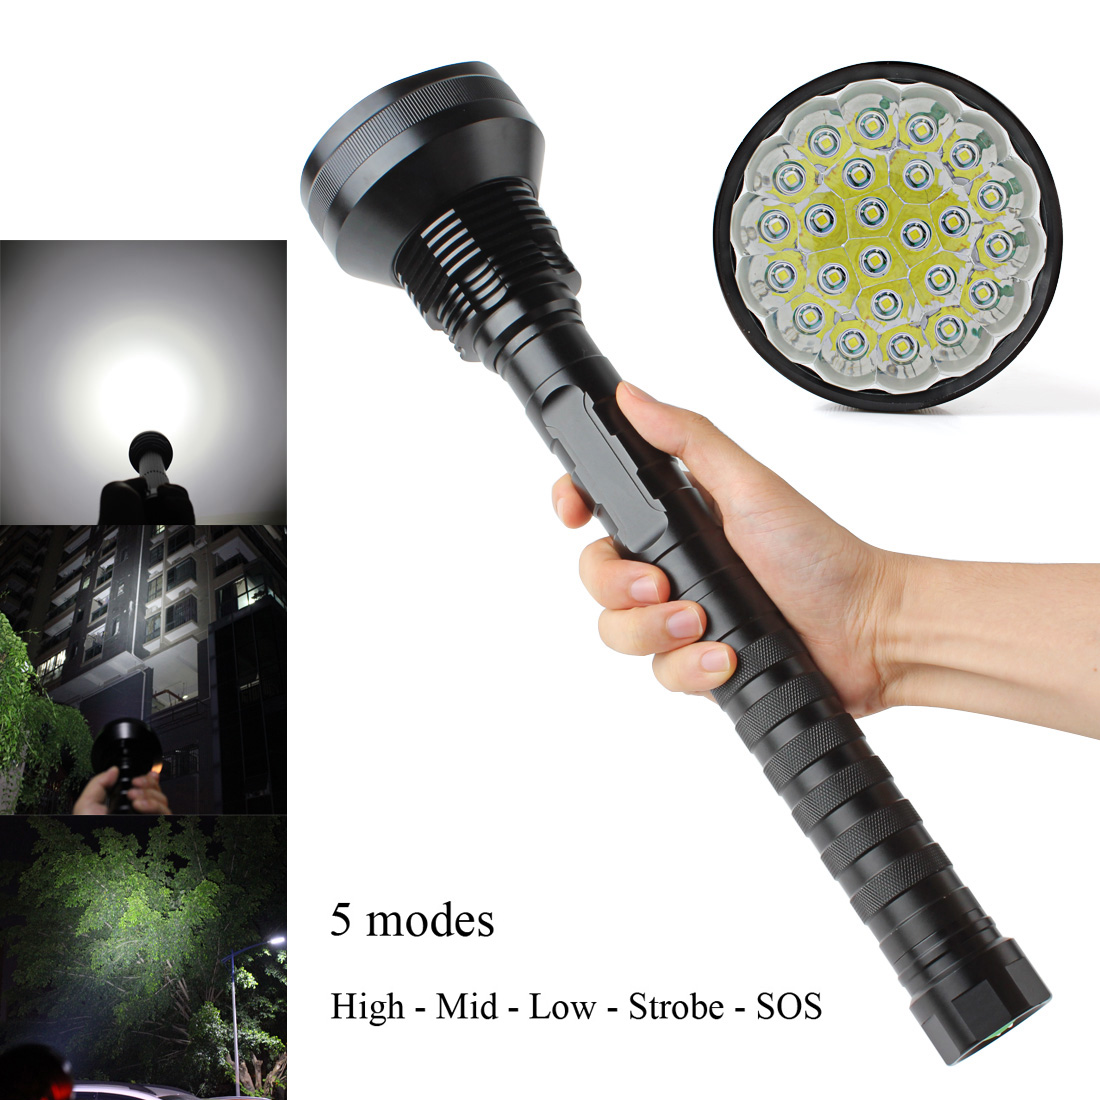 LED Flashlight NEW CREE XML-T6 21/24 LED 32000 LM High Power Glare T6 LED Torch Floodlight Accent Light Camping Lamp фара для велосипеда new 3 x t6 securitying cree xml led xml t6